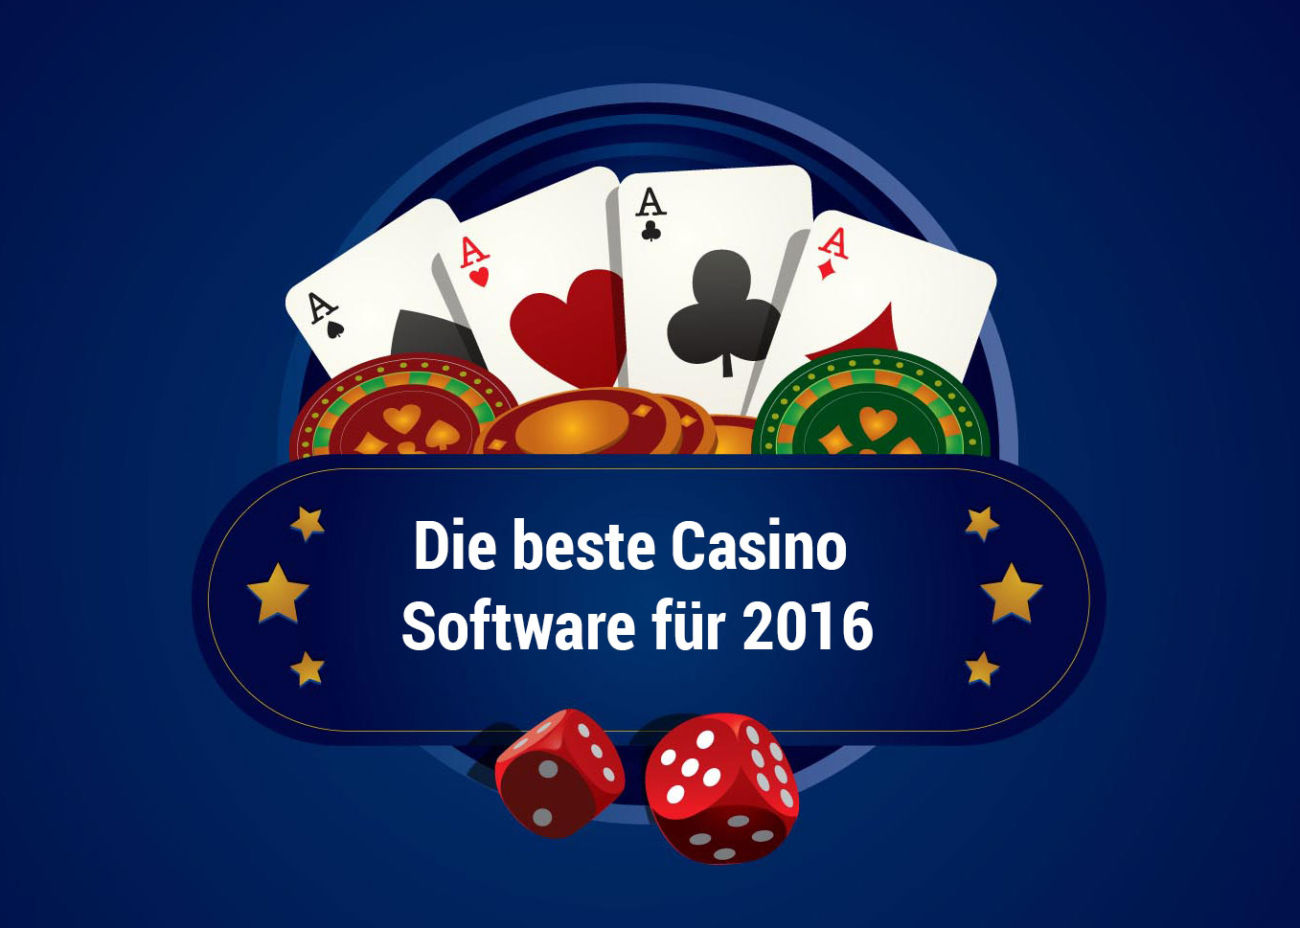 Casino software provider m casino address